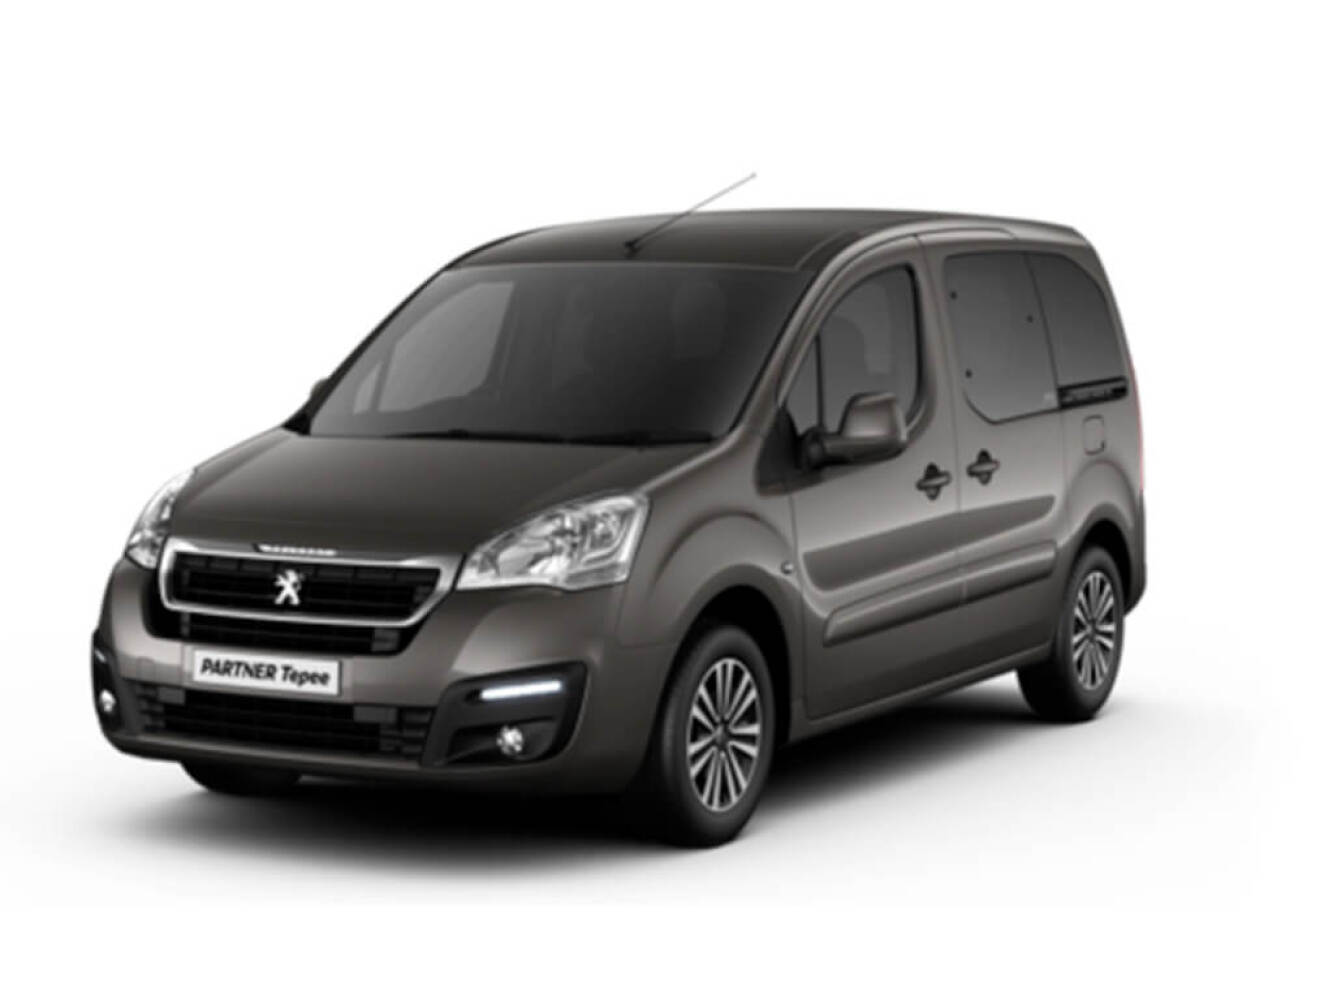 new peugeot partner tepee 1.2 puretech 110 active 5dr petrol estate